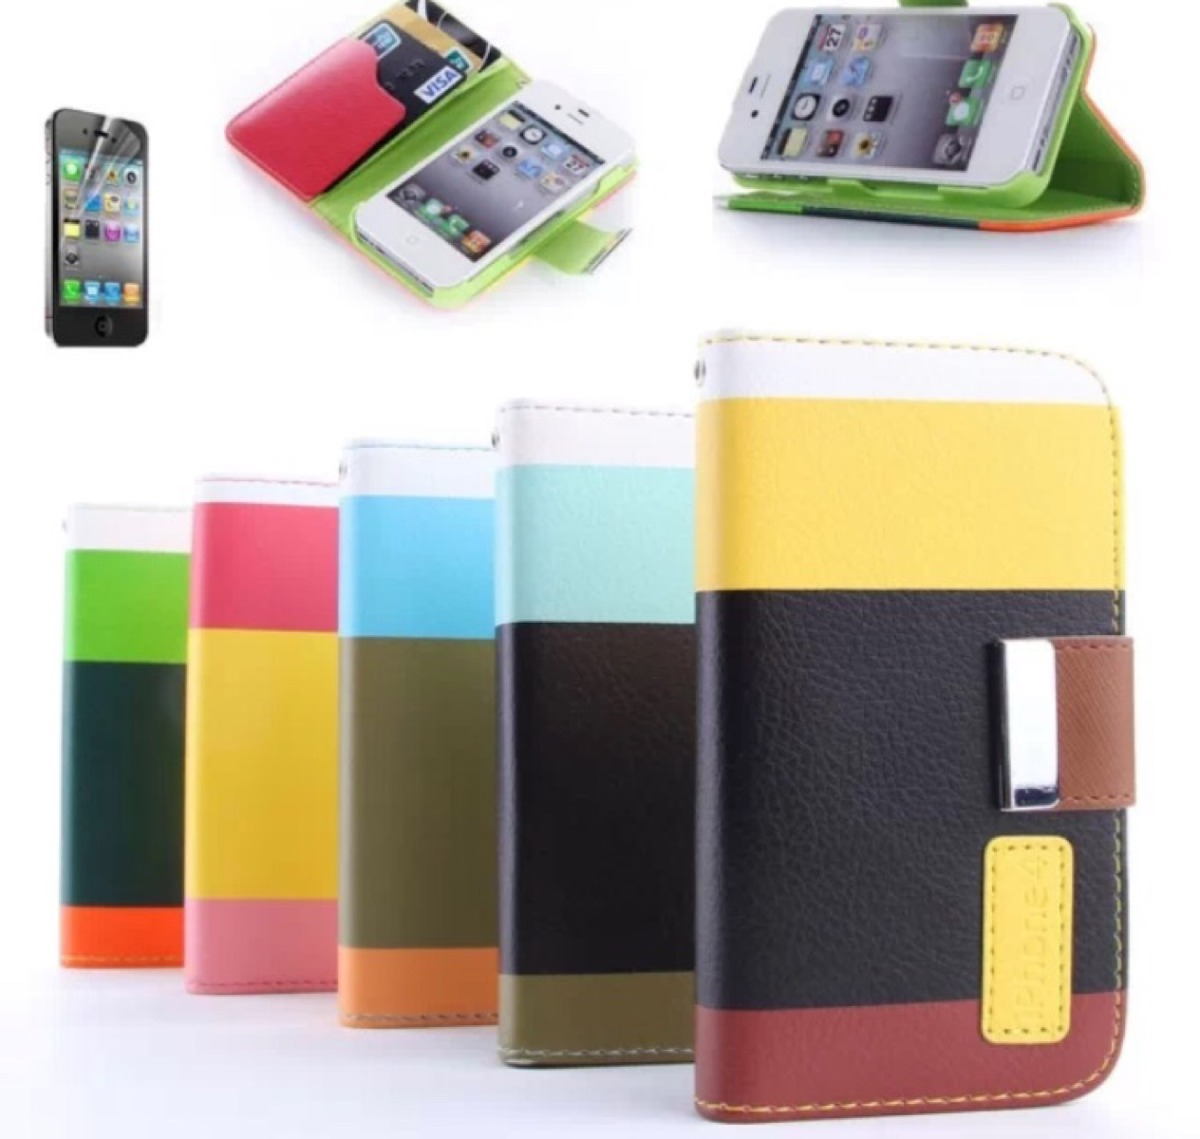 Fundas iphone 4 y 4s cartera en mercado libre - Fundas iphone 4 4s ...